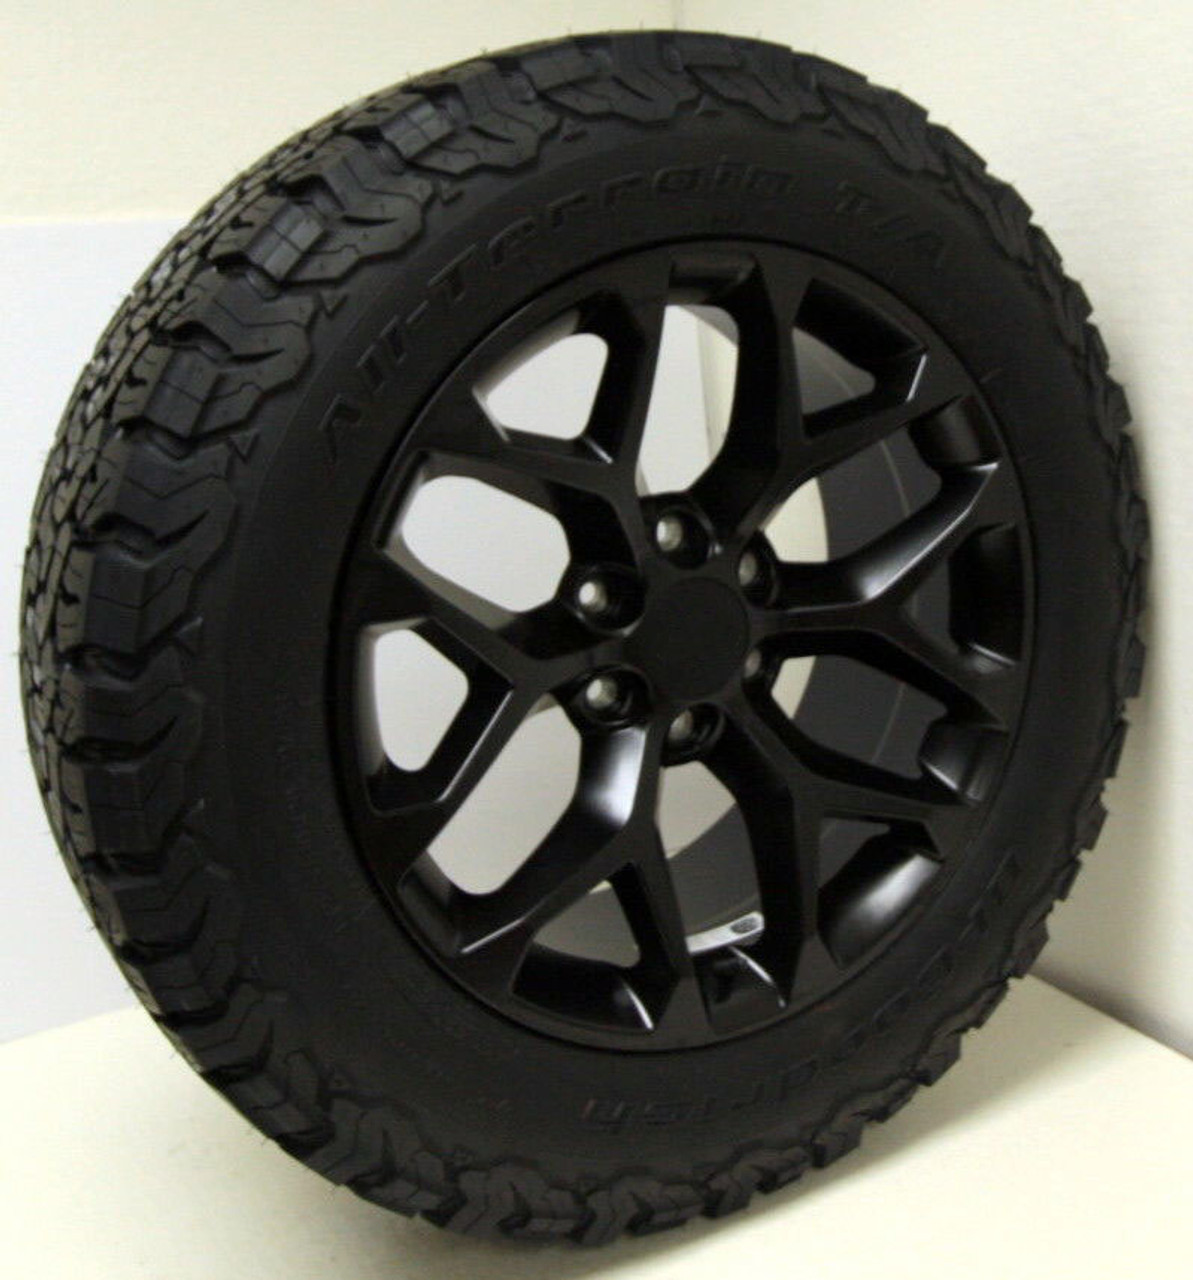 "Satin Matte Black 20"" Snowflake Wheels with BFG KO2 A/T Tires for GMC Sierra, Yukon, Denali - New Set of 4"